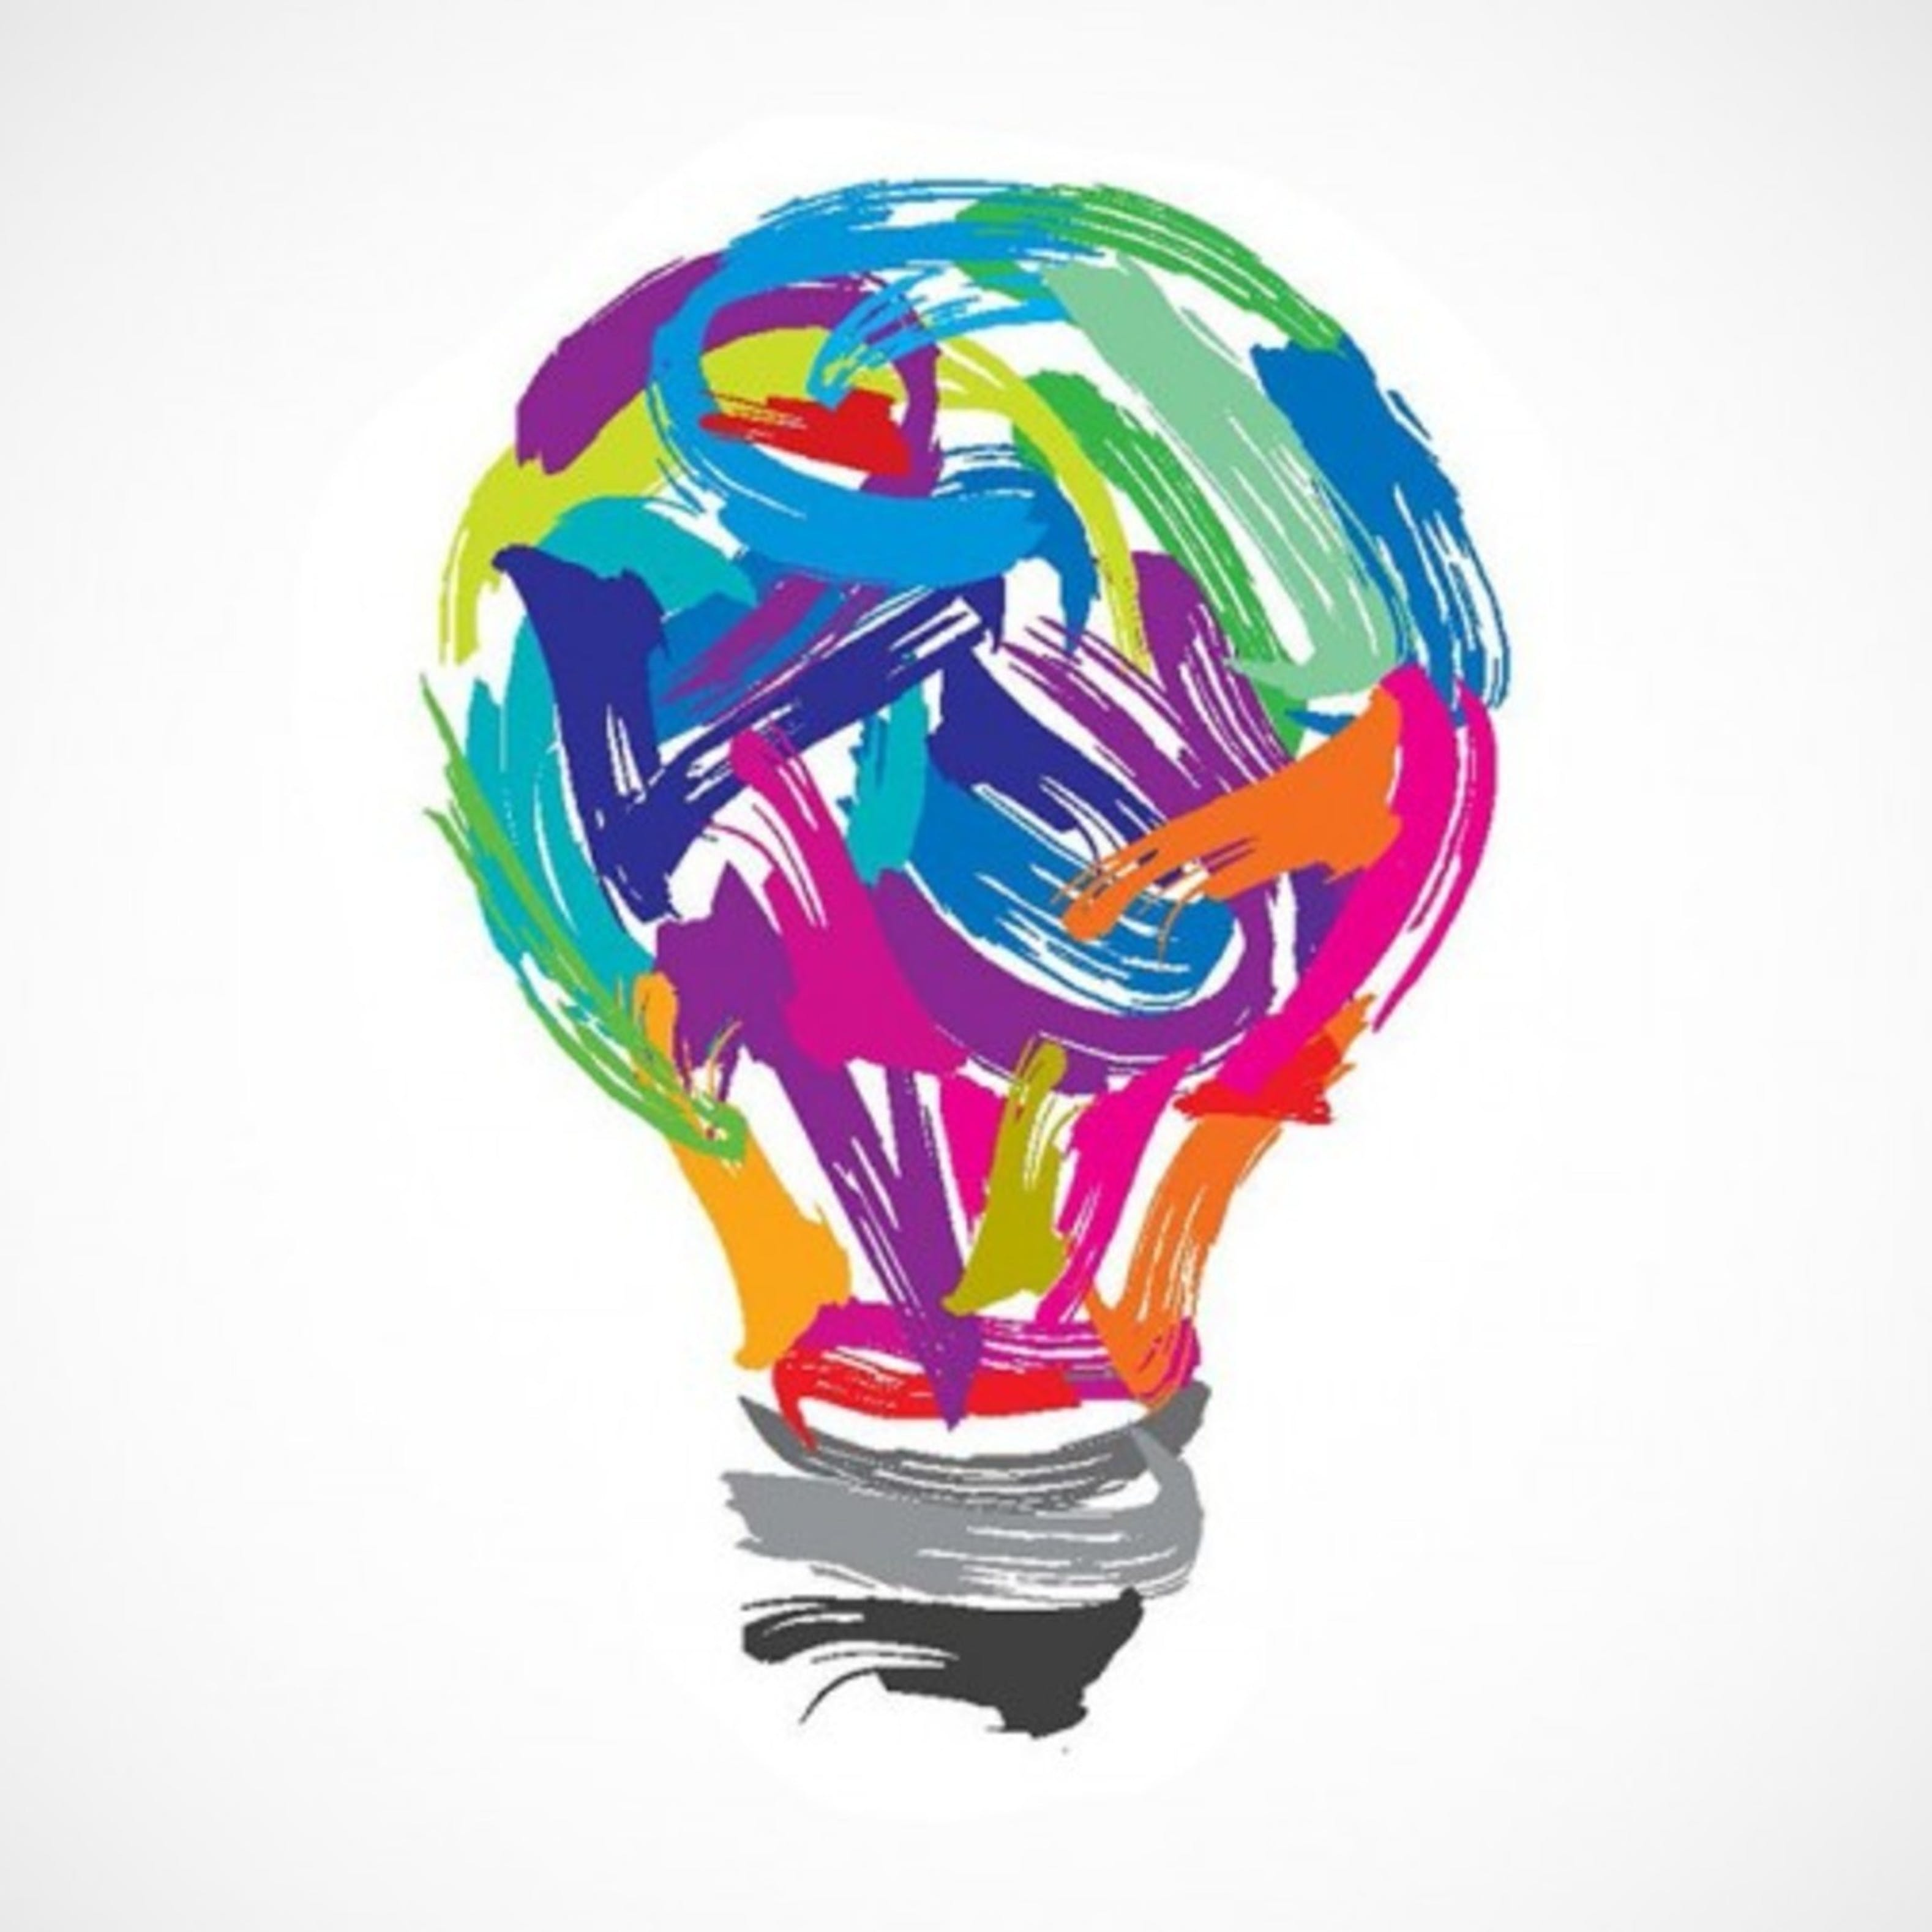 Design Thinking for Innovation | Coursera